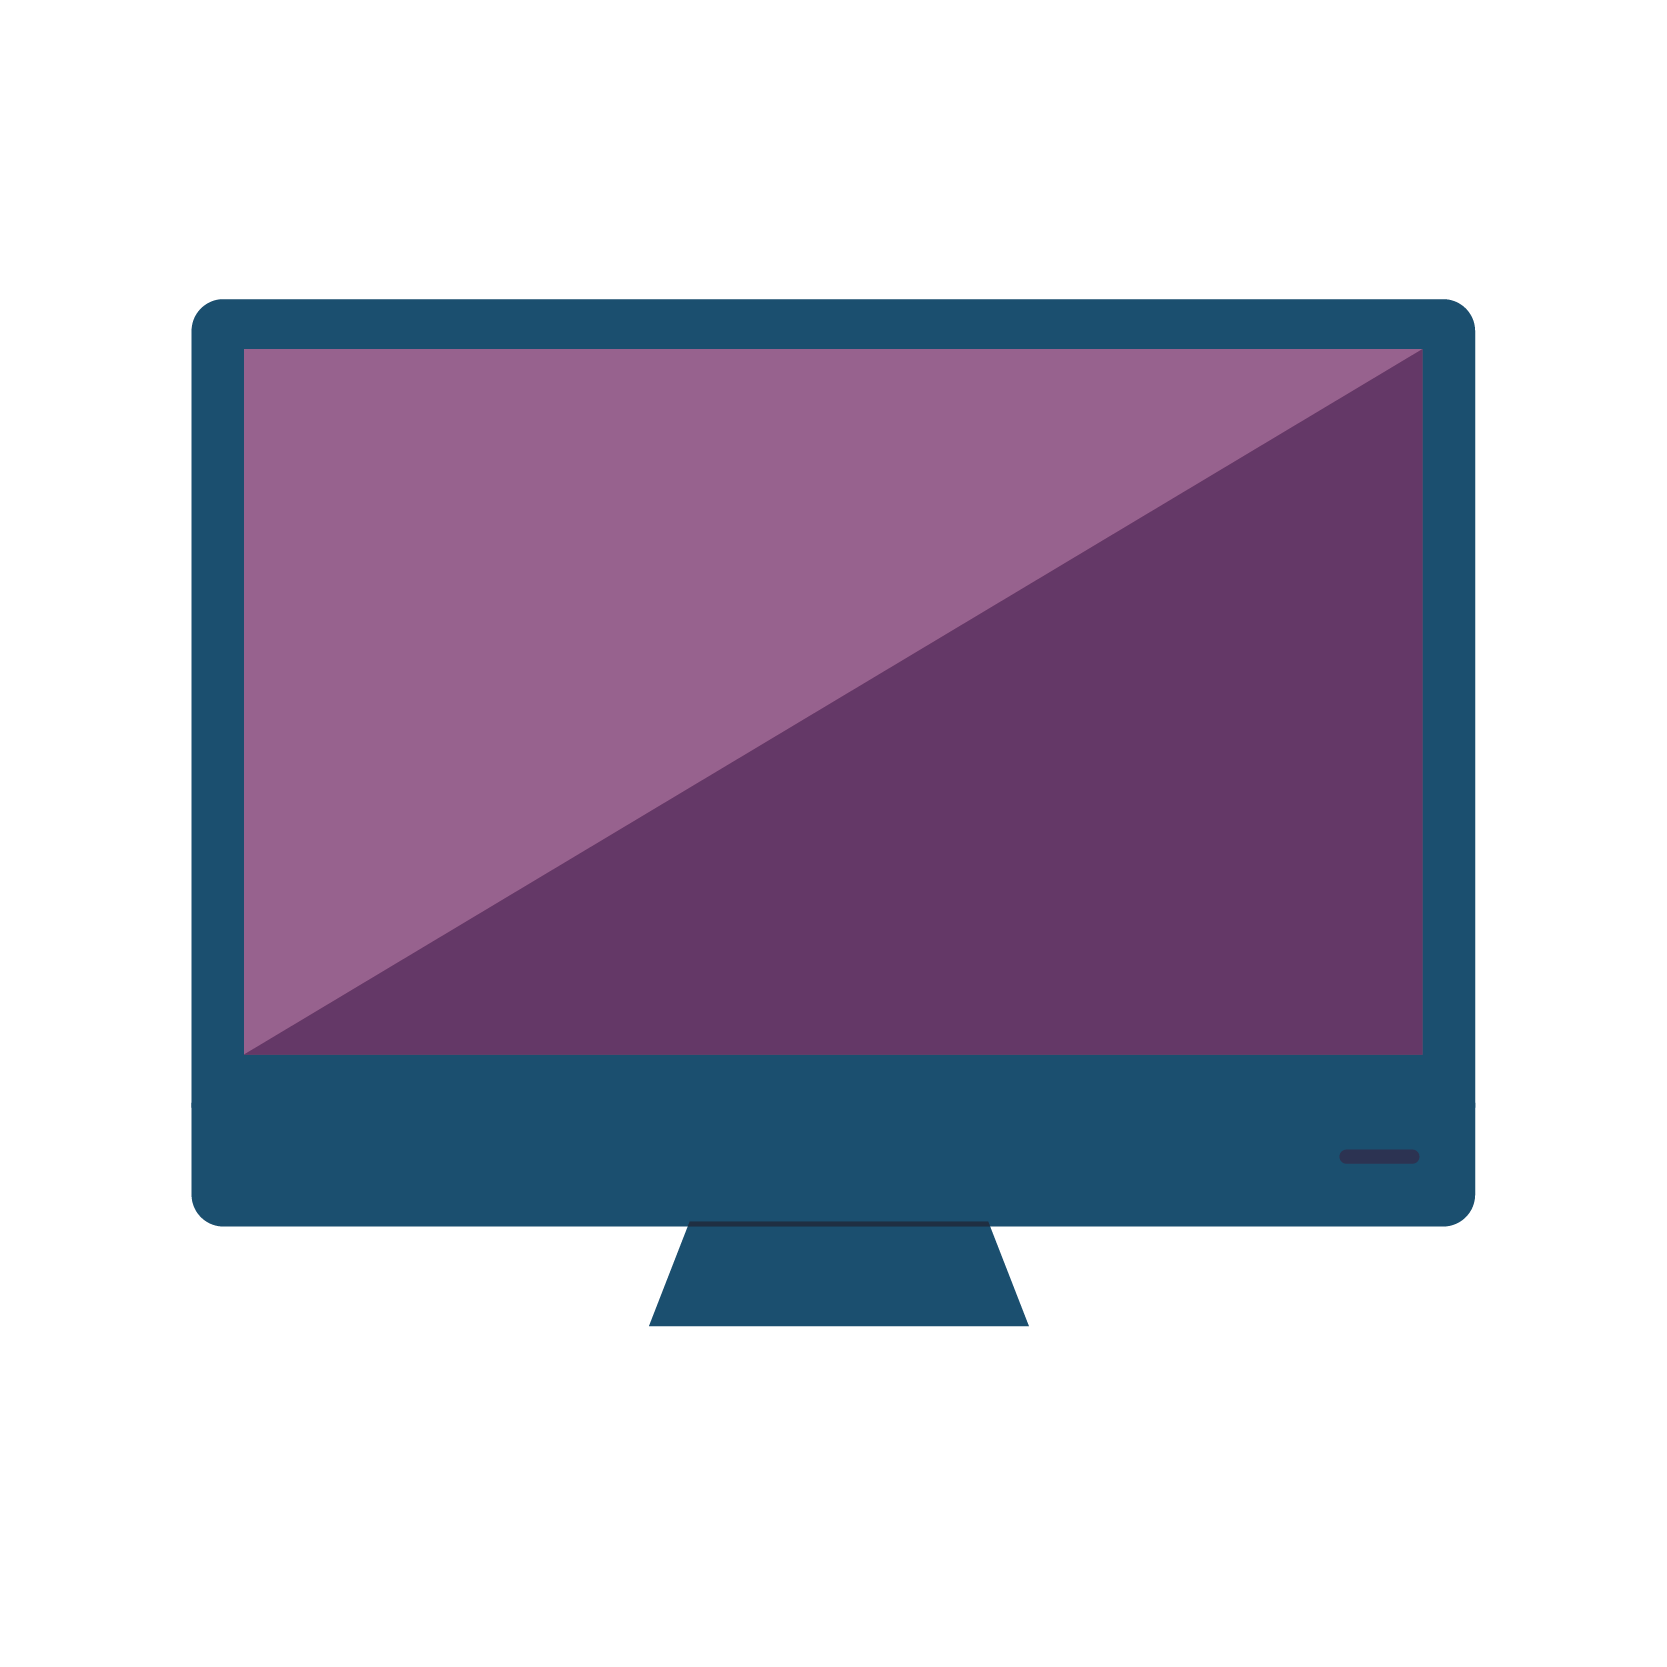 D03975_Icon_Screen_151201.png